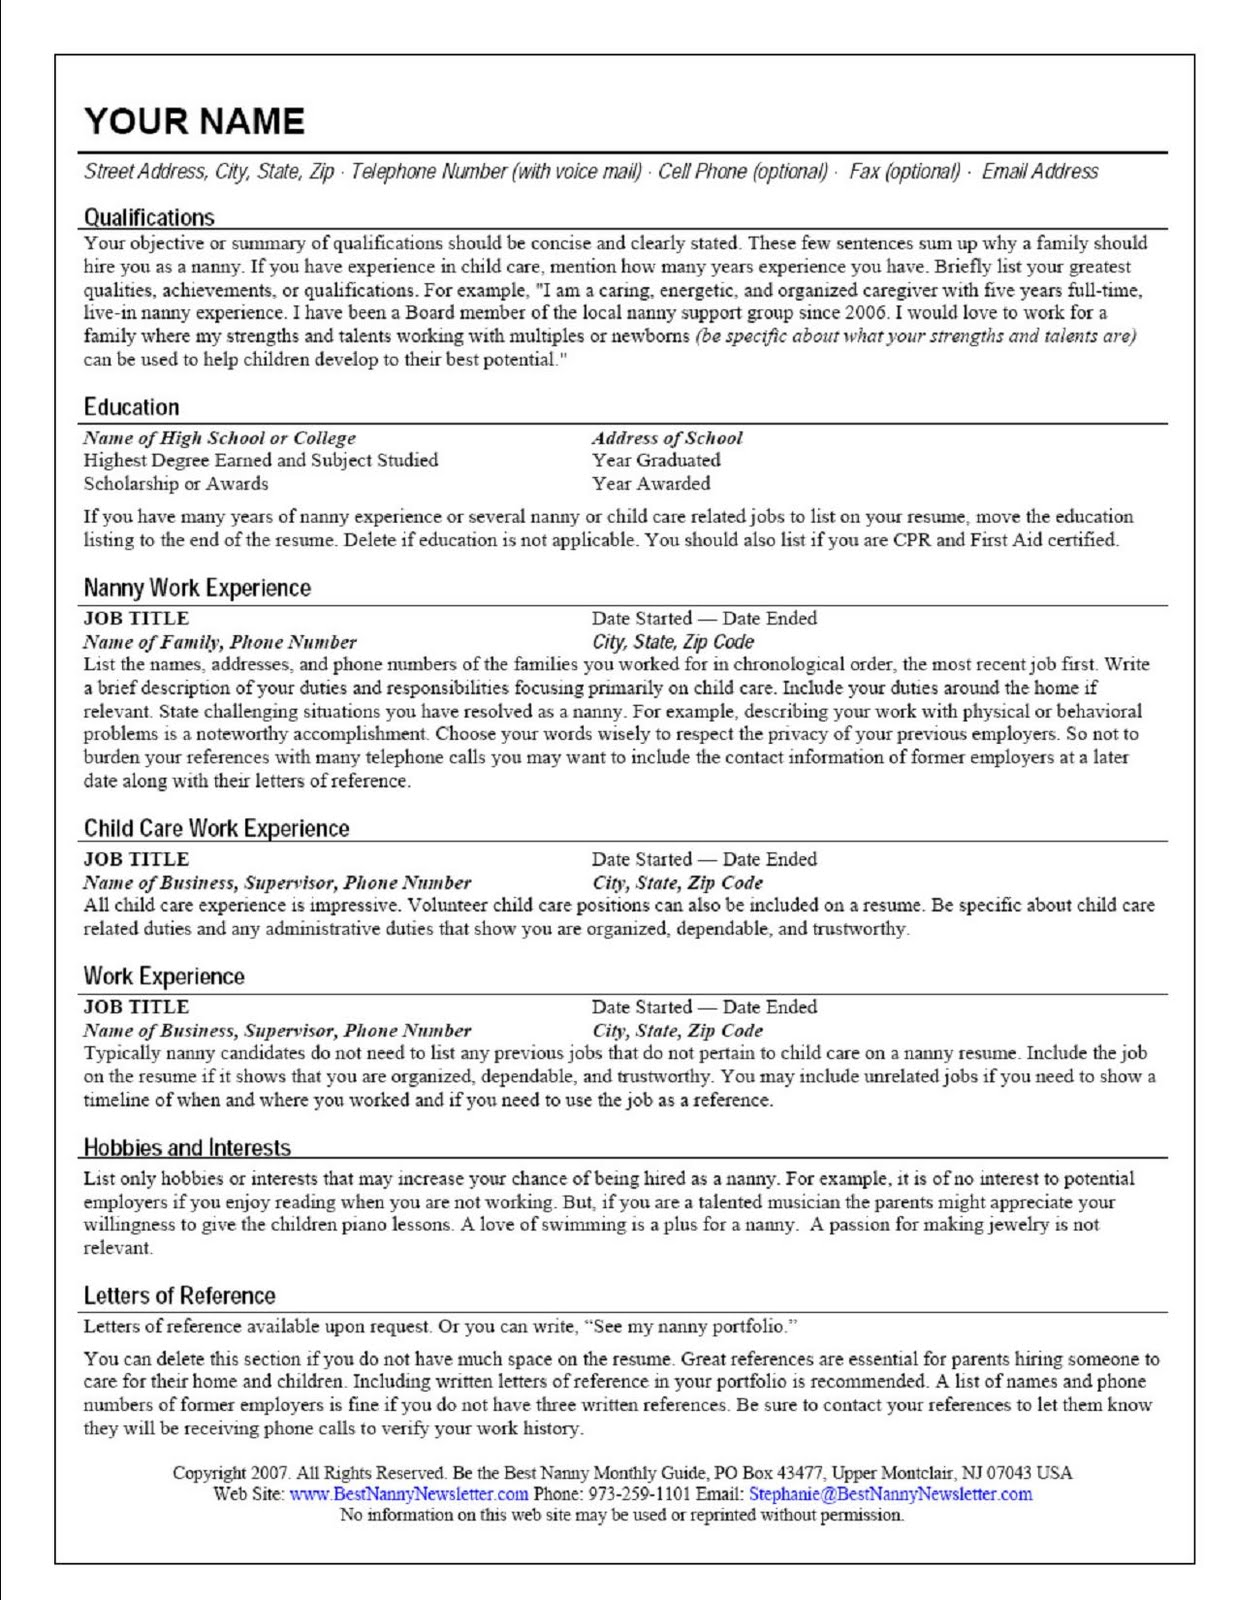 professional nanny resume sample